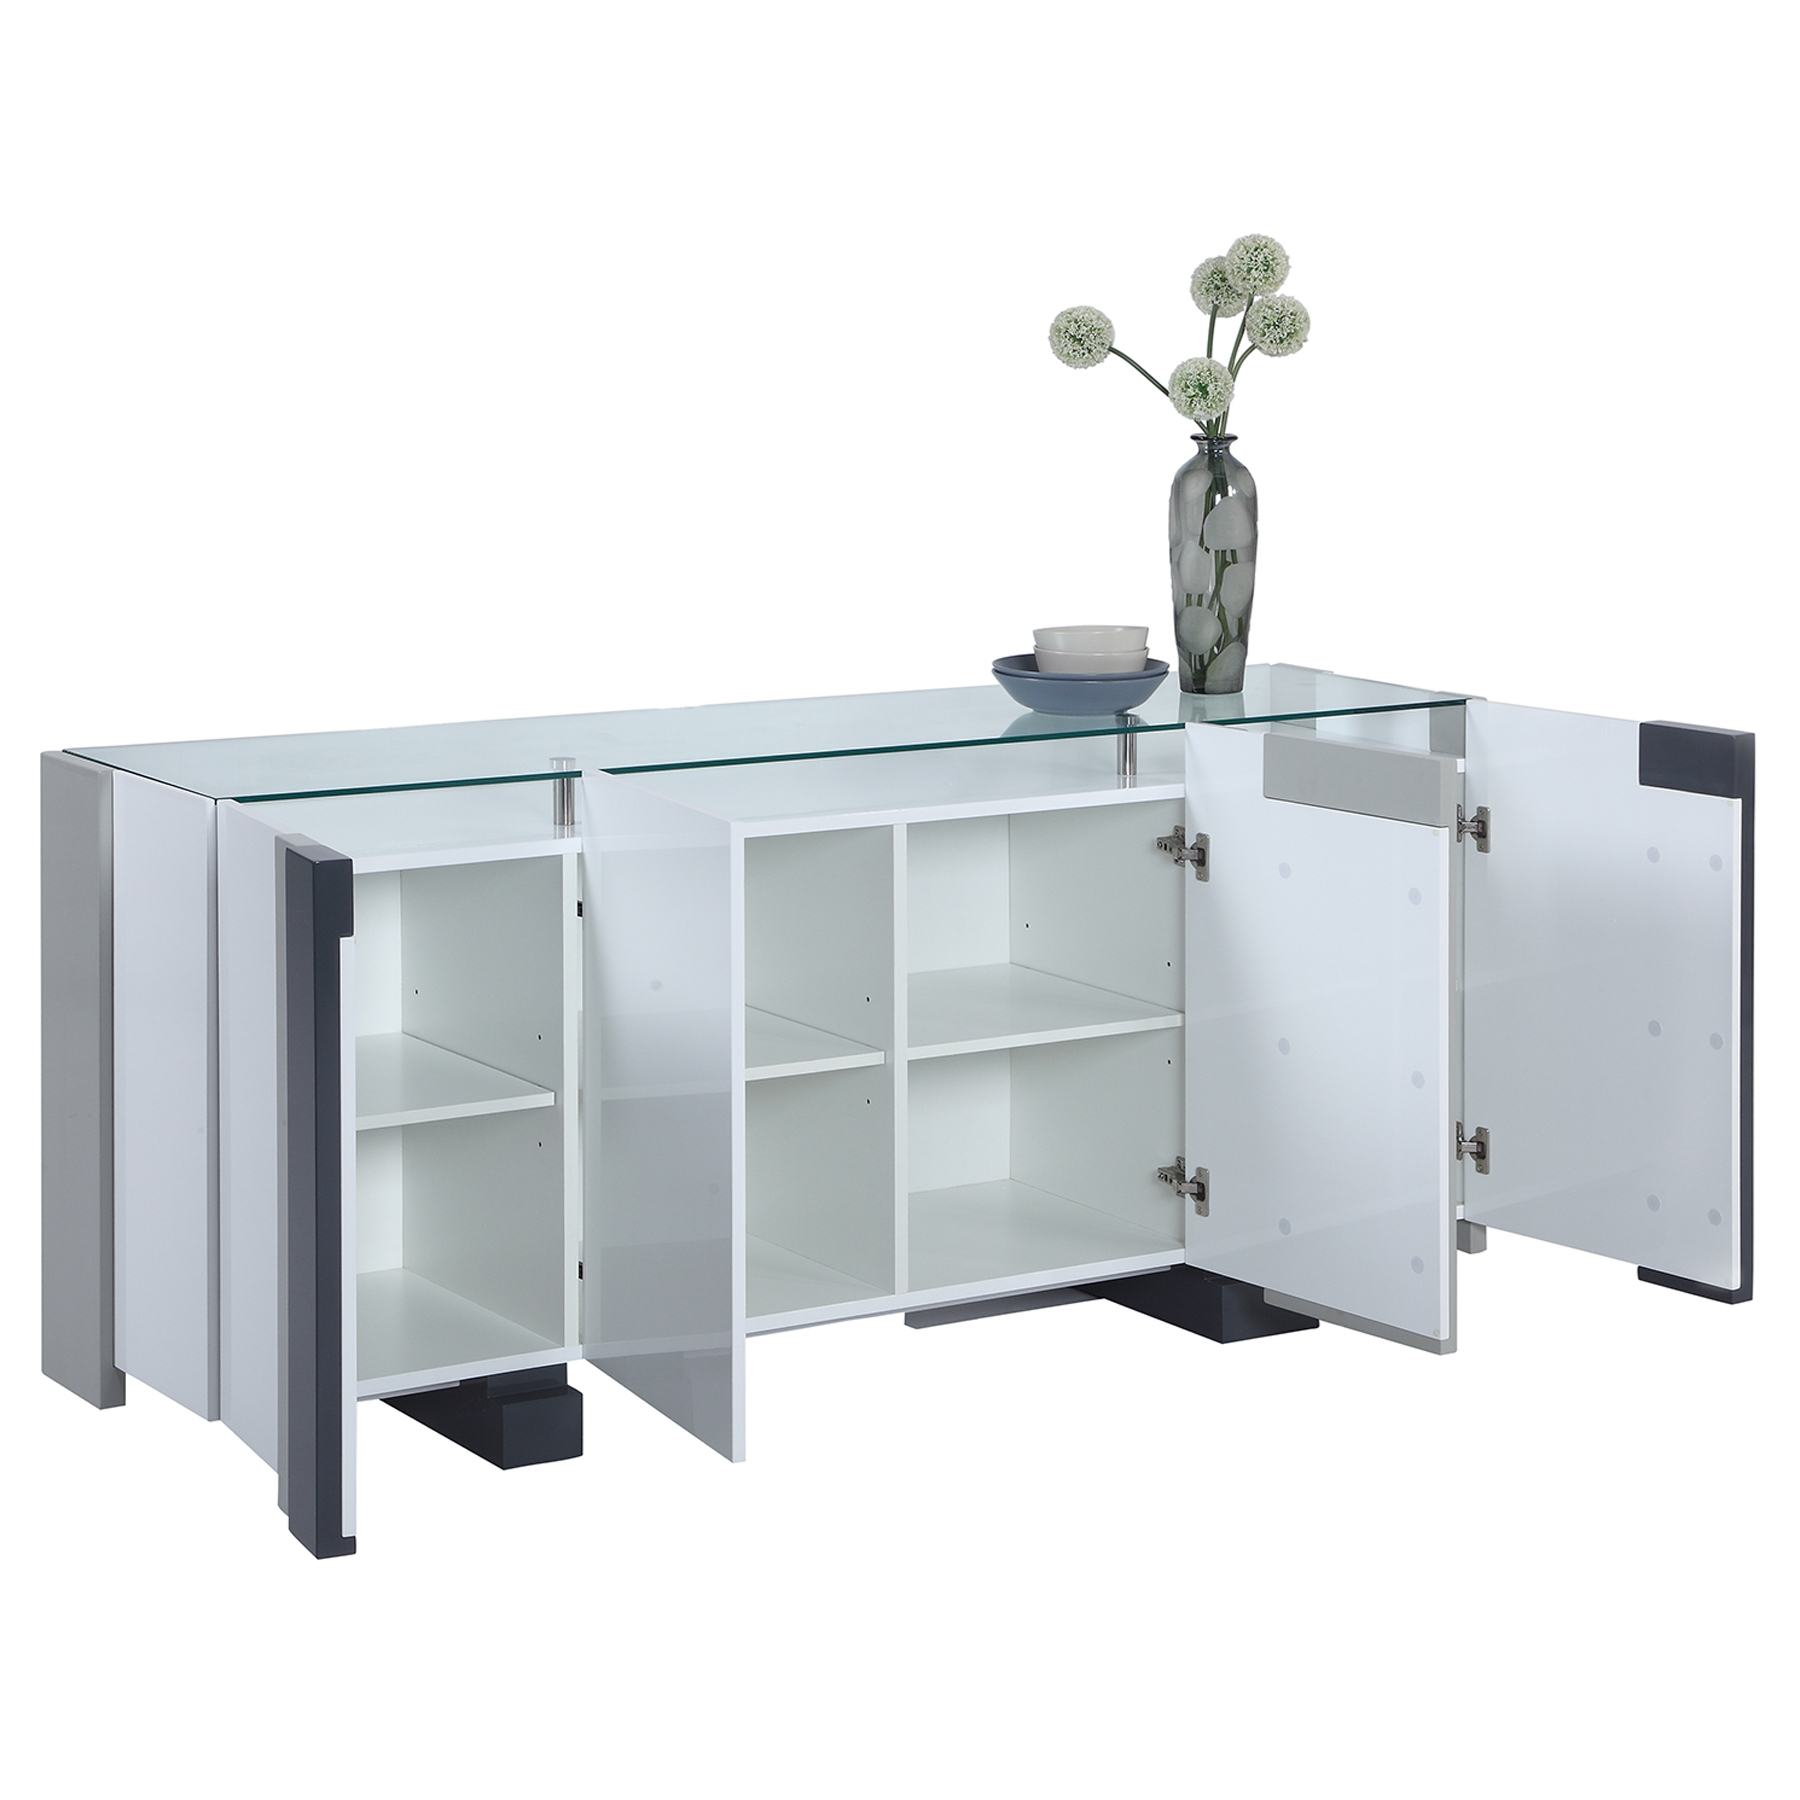 Shelley 4 Doors Buffet - Clear, Gloss White and Gray - CI-SHELLEY-BUF